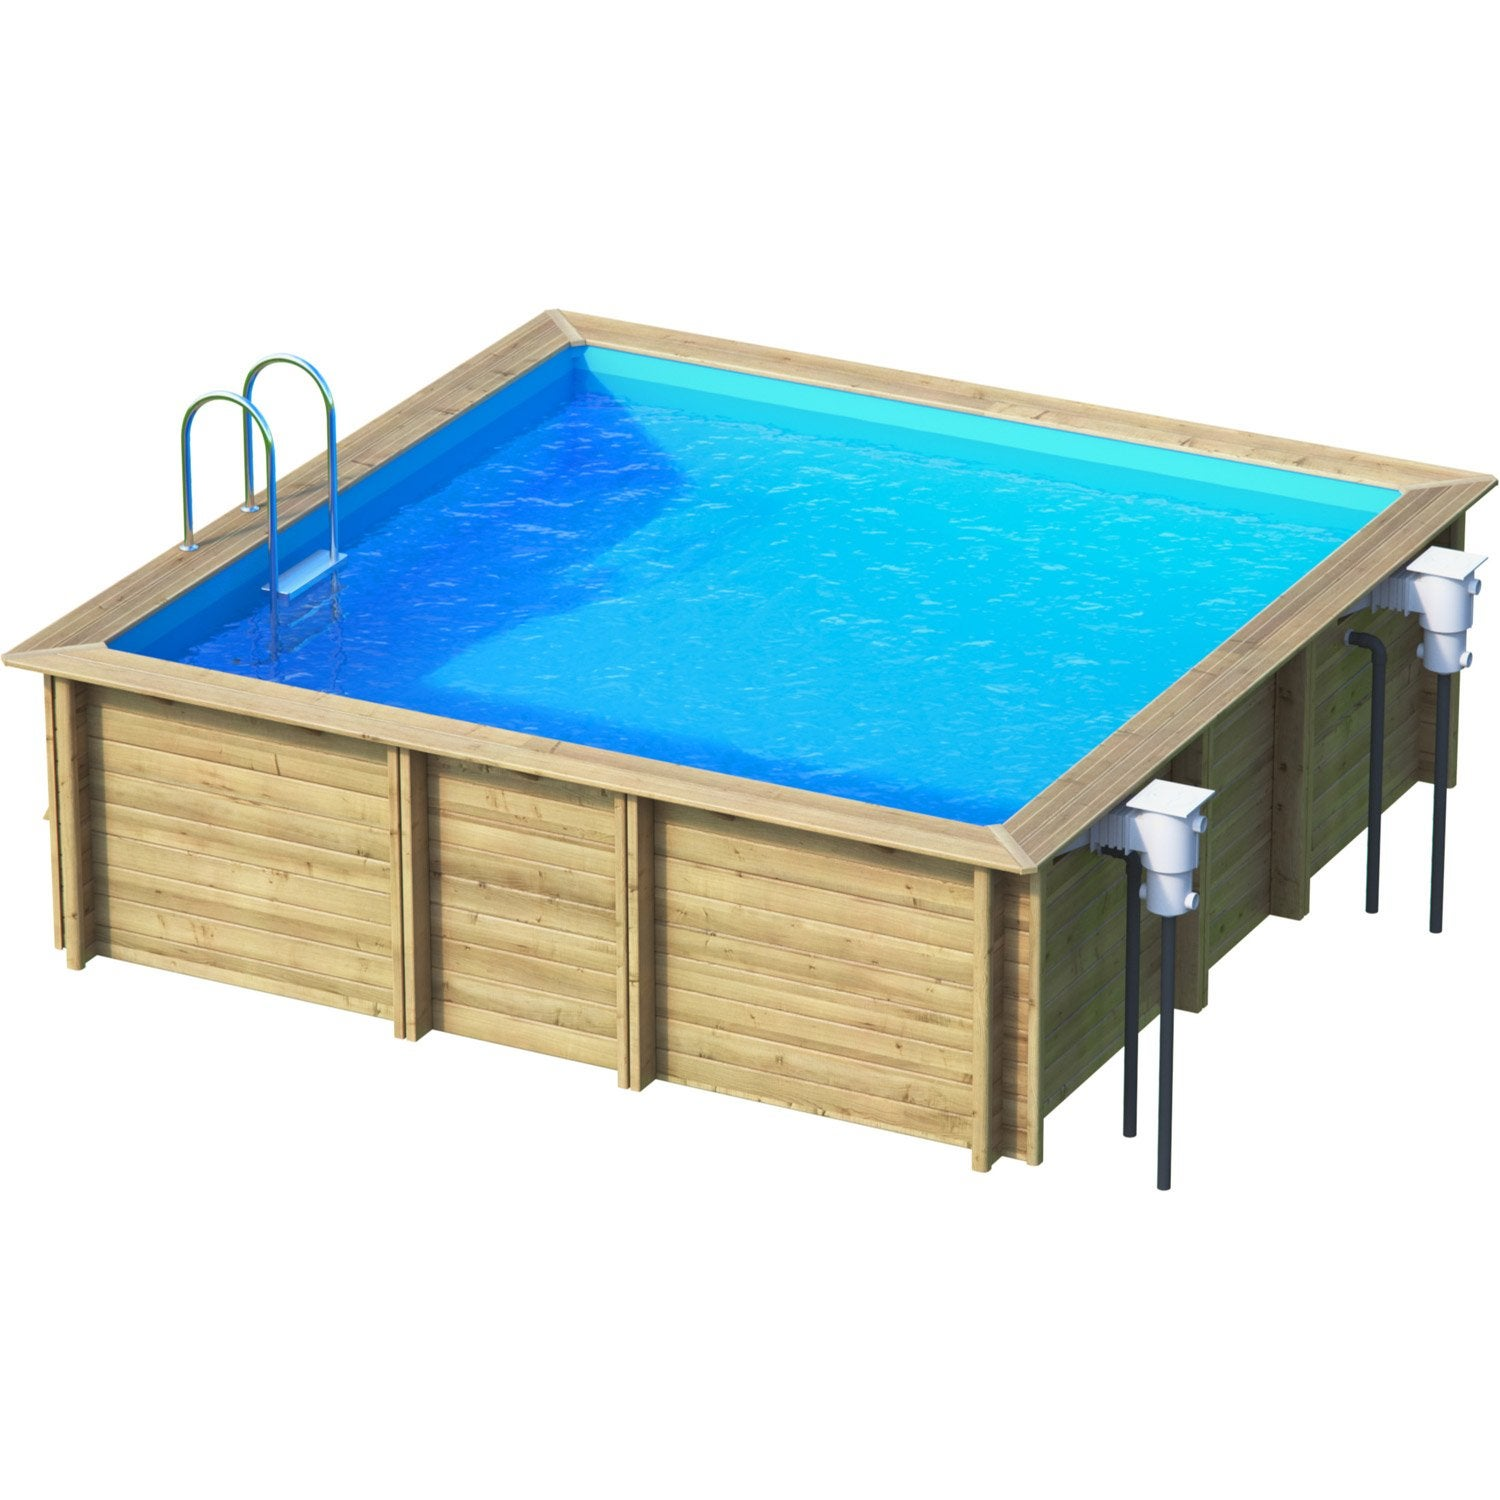 Piscine bois weva leroy merlin for Leroy merlin bache piscine